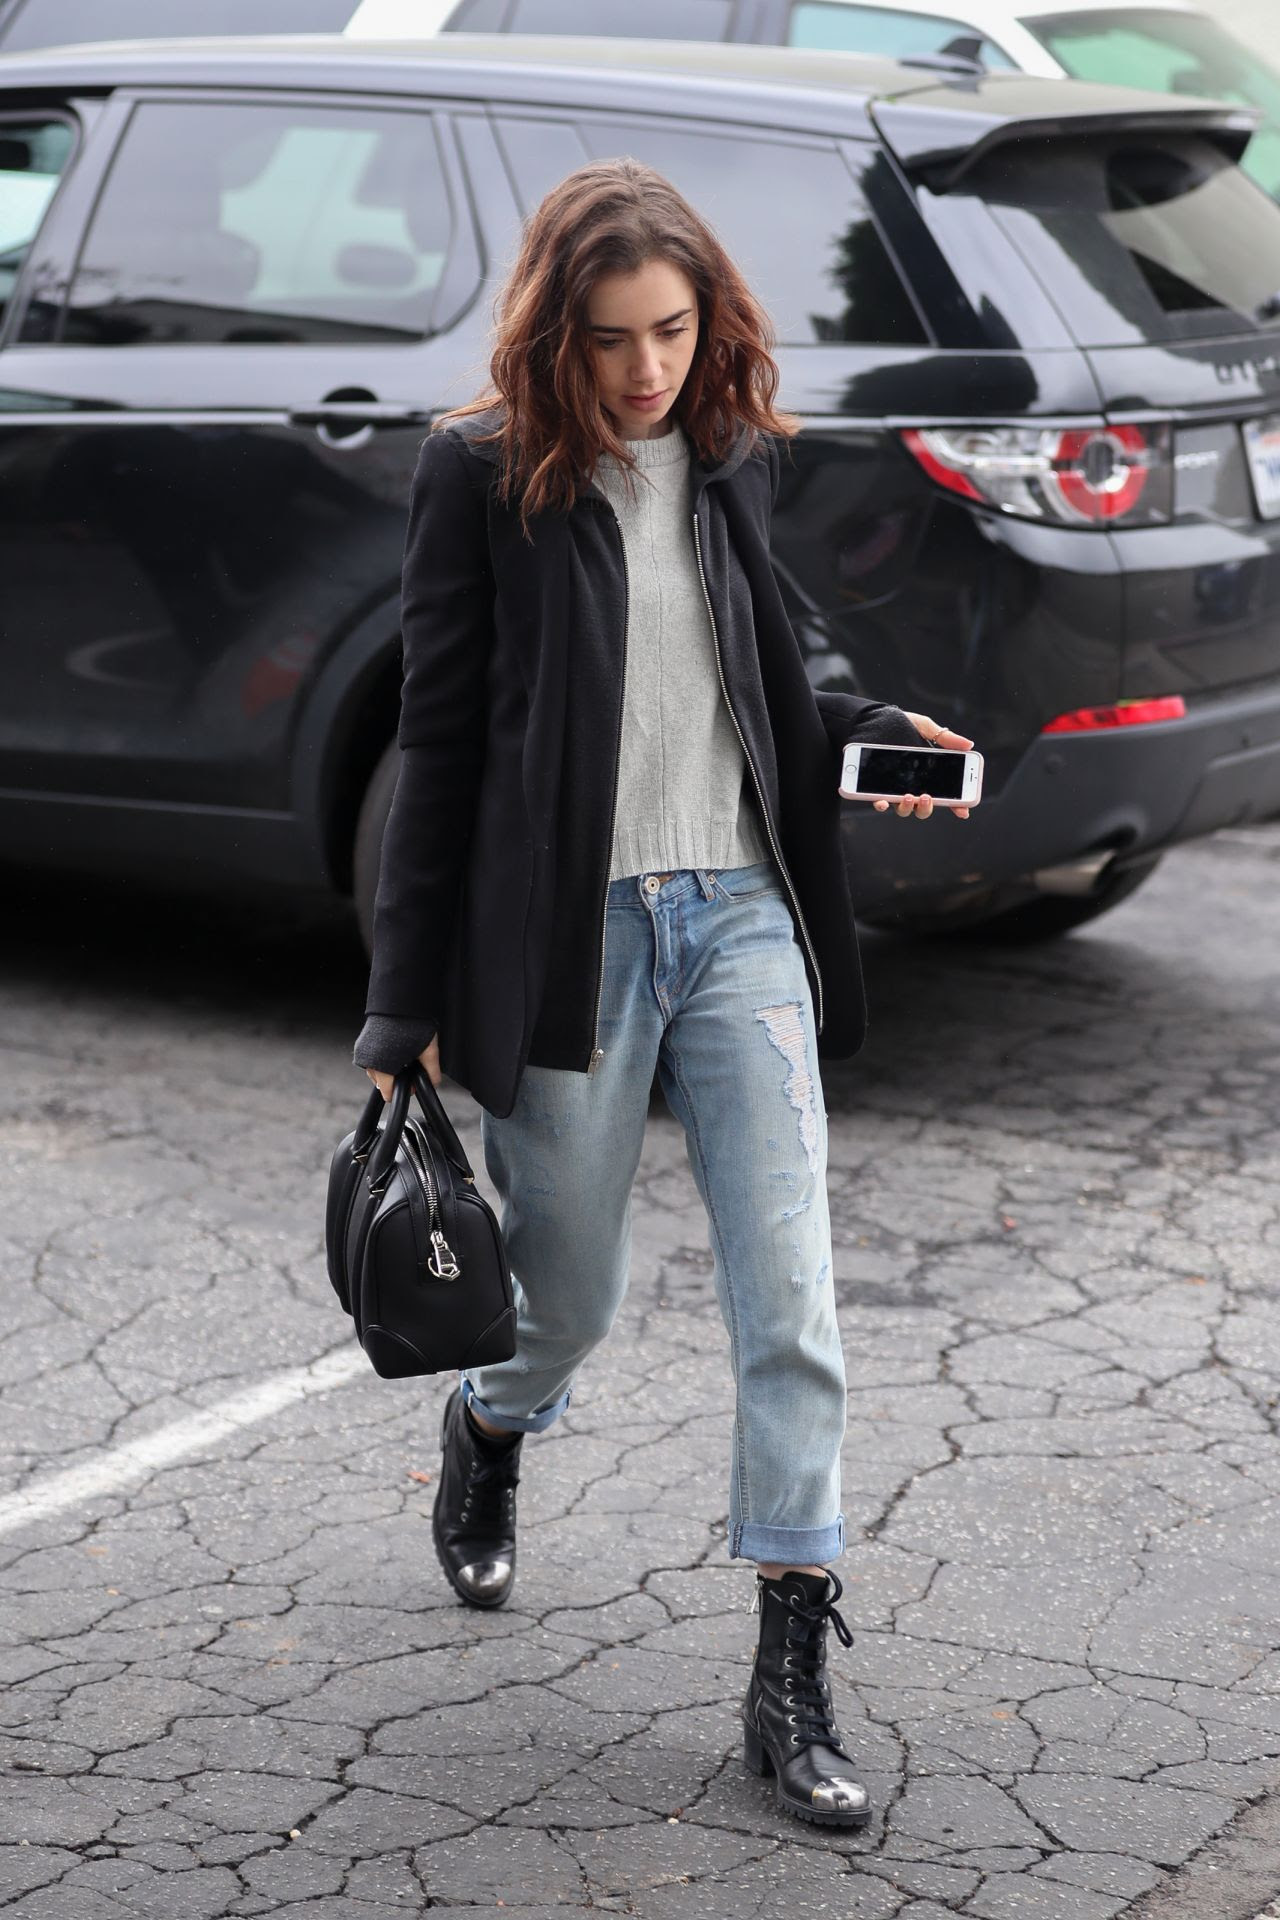 Image result for lily collins style 2017